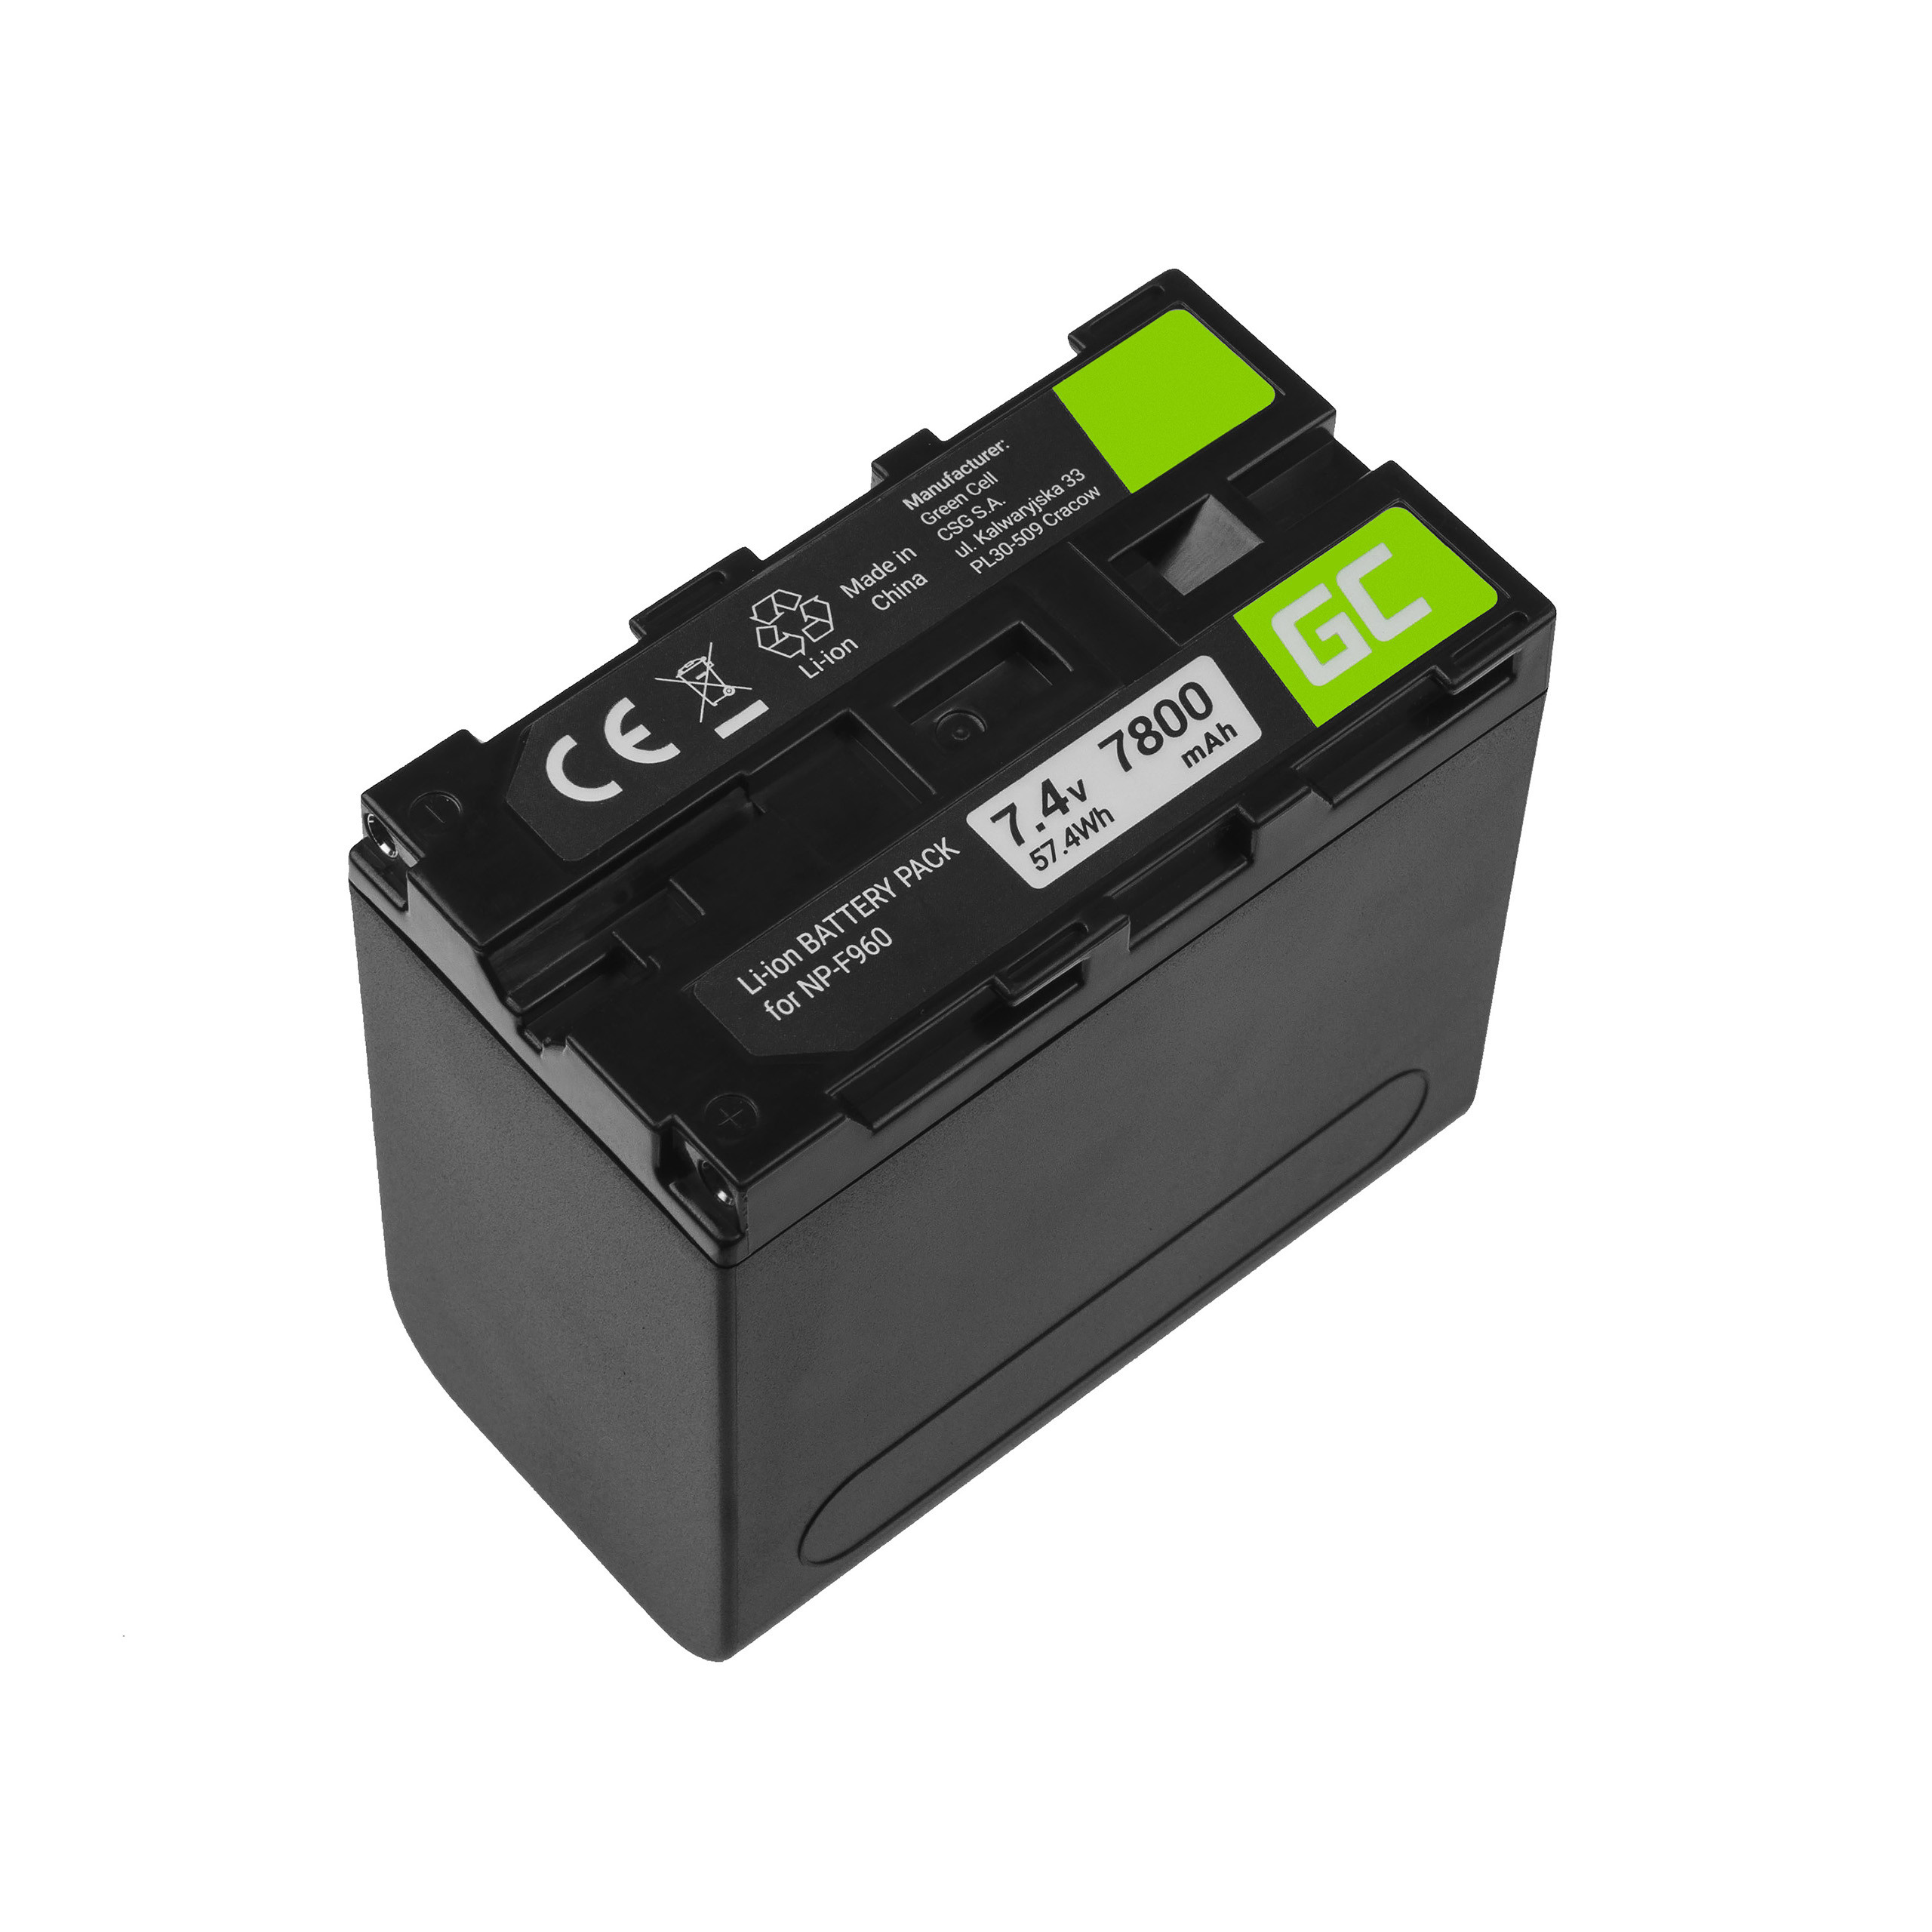 Green Cell Battery NP-F960 NP-F970 NP-F975 for Sony 7.4V 7800mAh